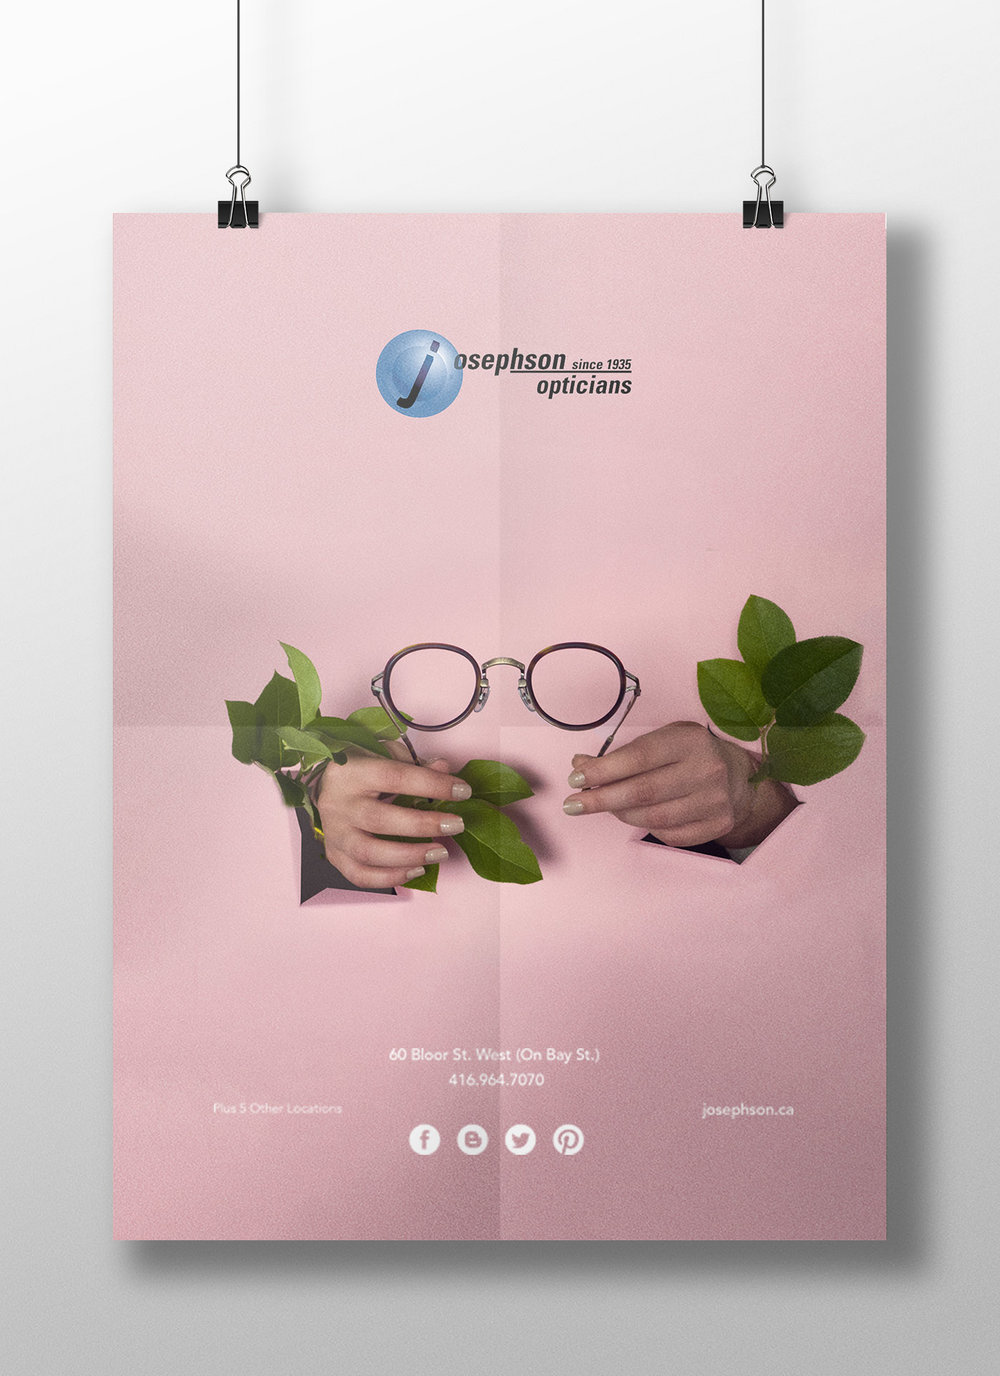 Poster series for Josephson Opticians by Solid White design agency